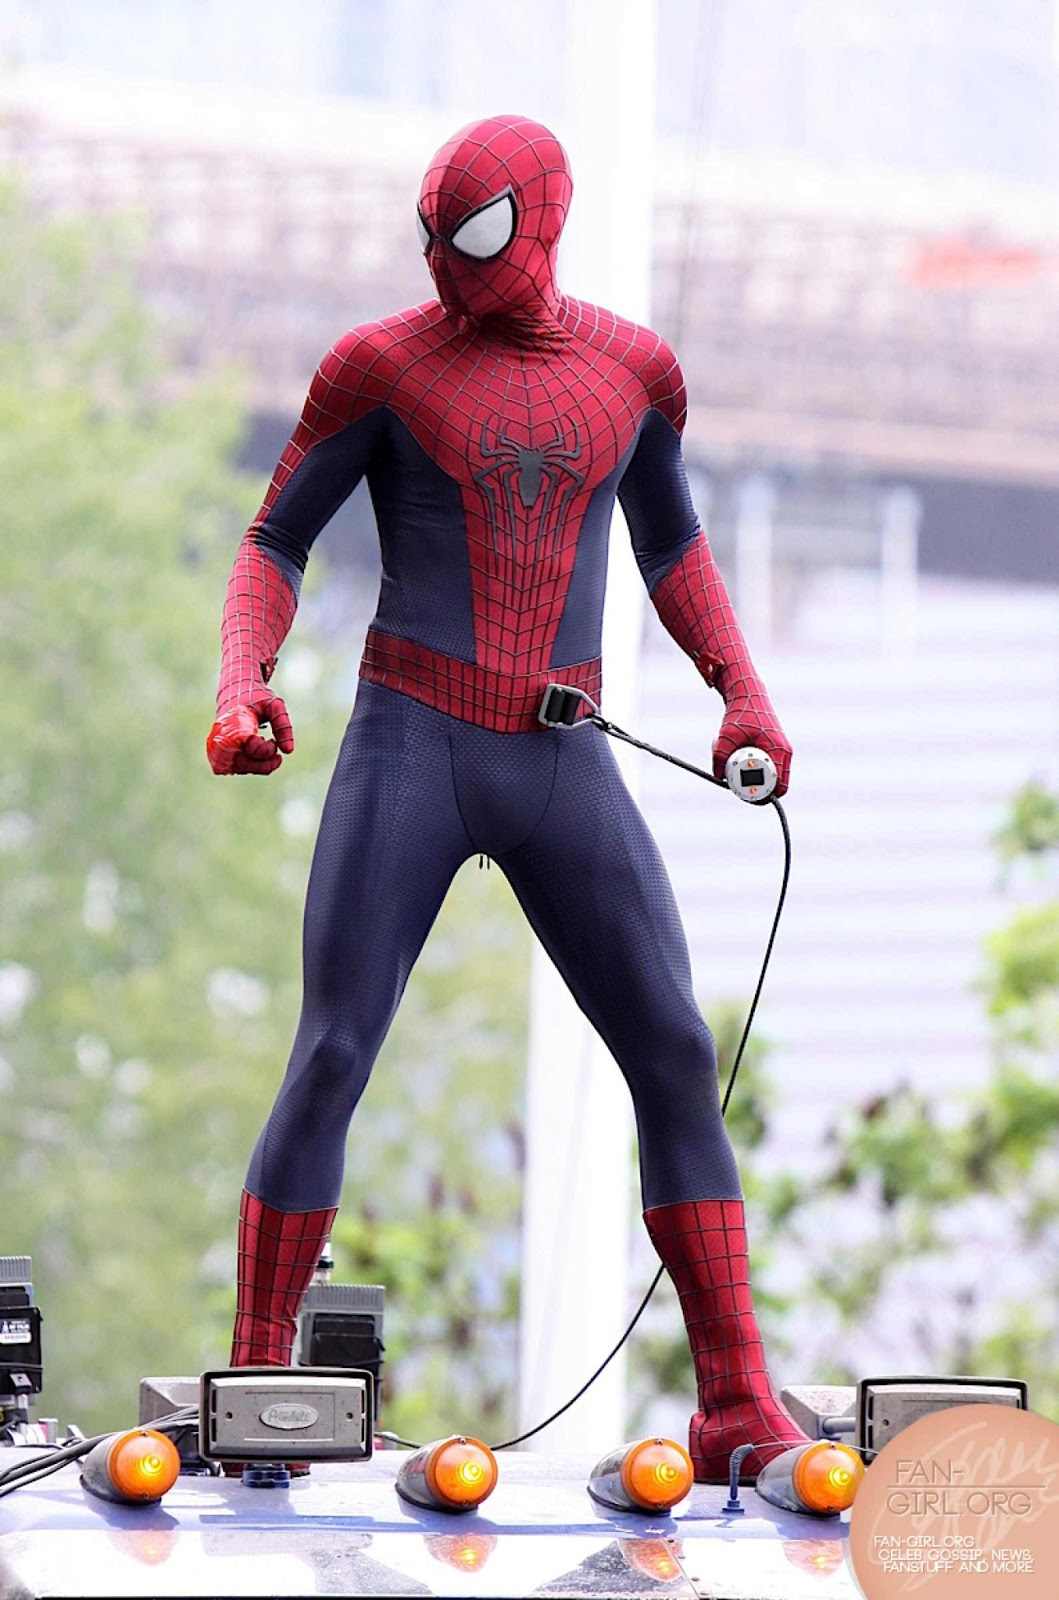 New 'Amazing Spider-Man 2' Set Photos Feature a Pre-CG ... |The Amazing Spider Man 2 Rhino Suit